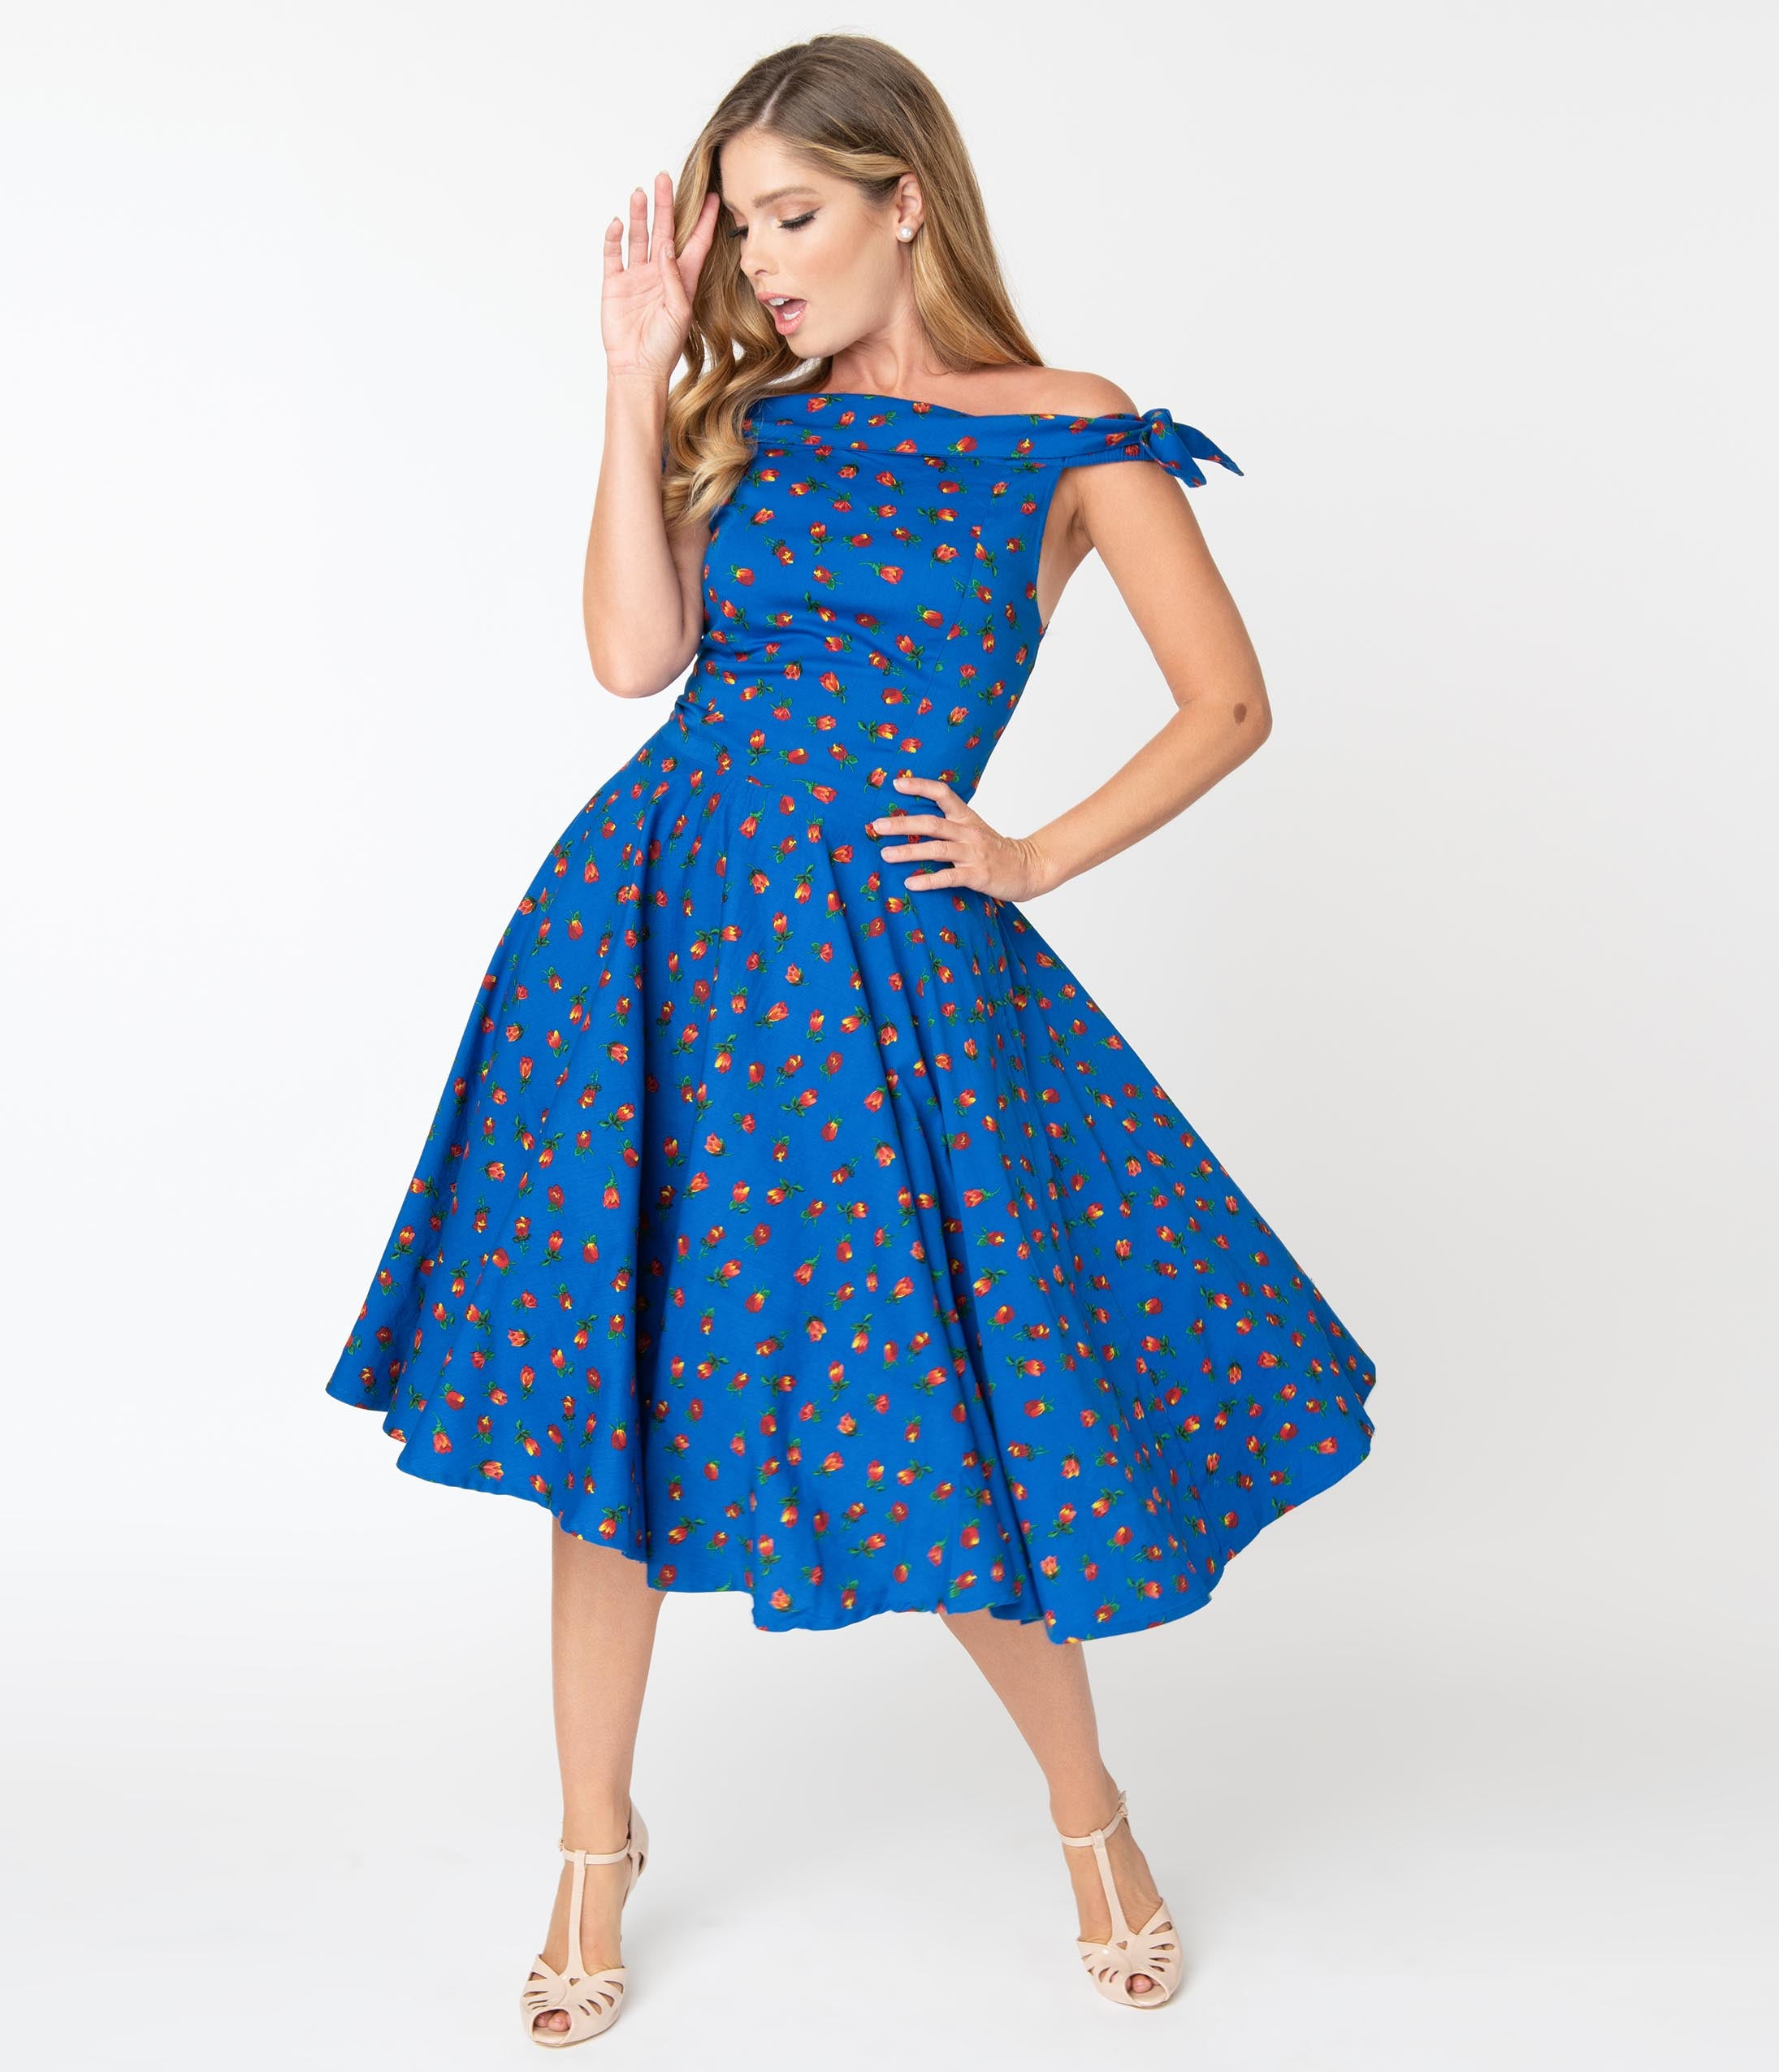 1950s Dresses, 50s Dresses | 1950s Style Dresses 1950S Style Blue  Red Floral Jessica Swing Dress $92.00 AT vintagedancer.com